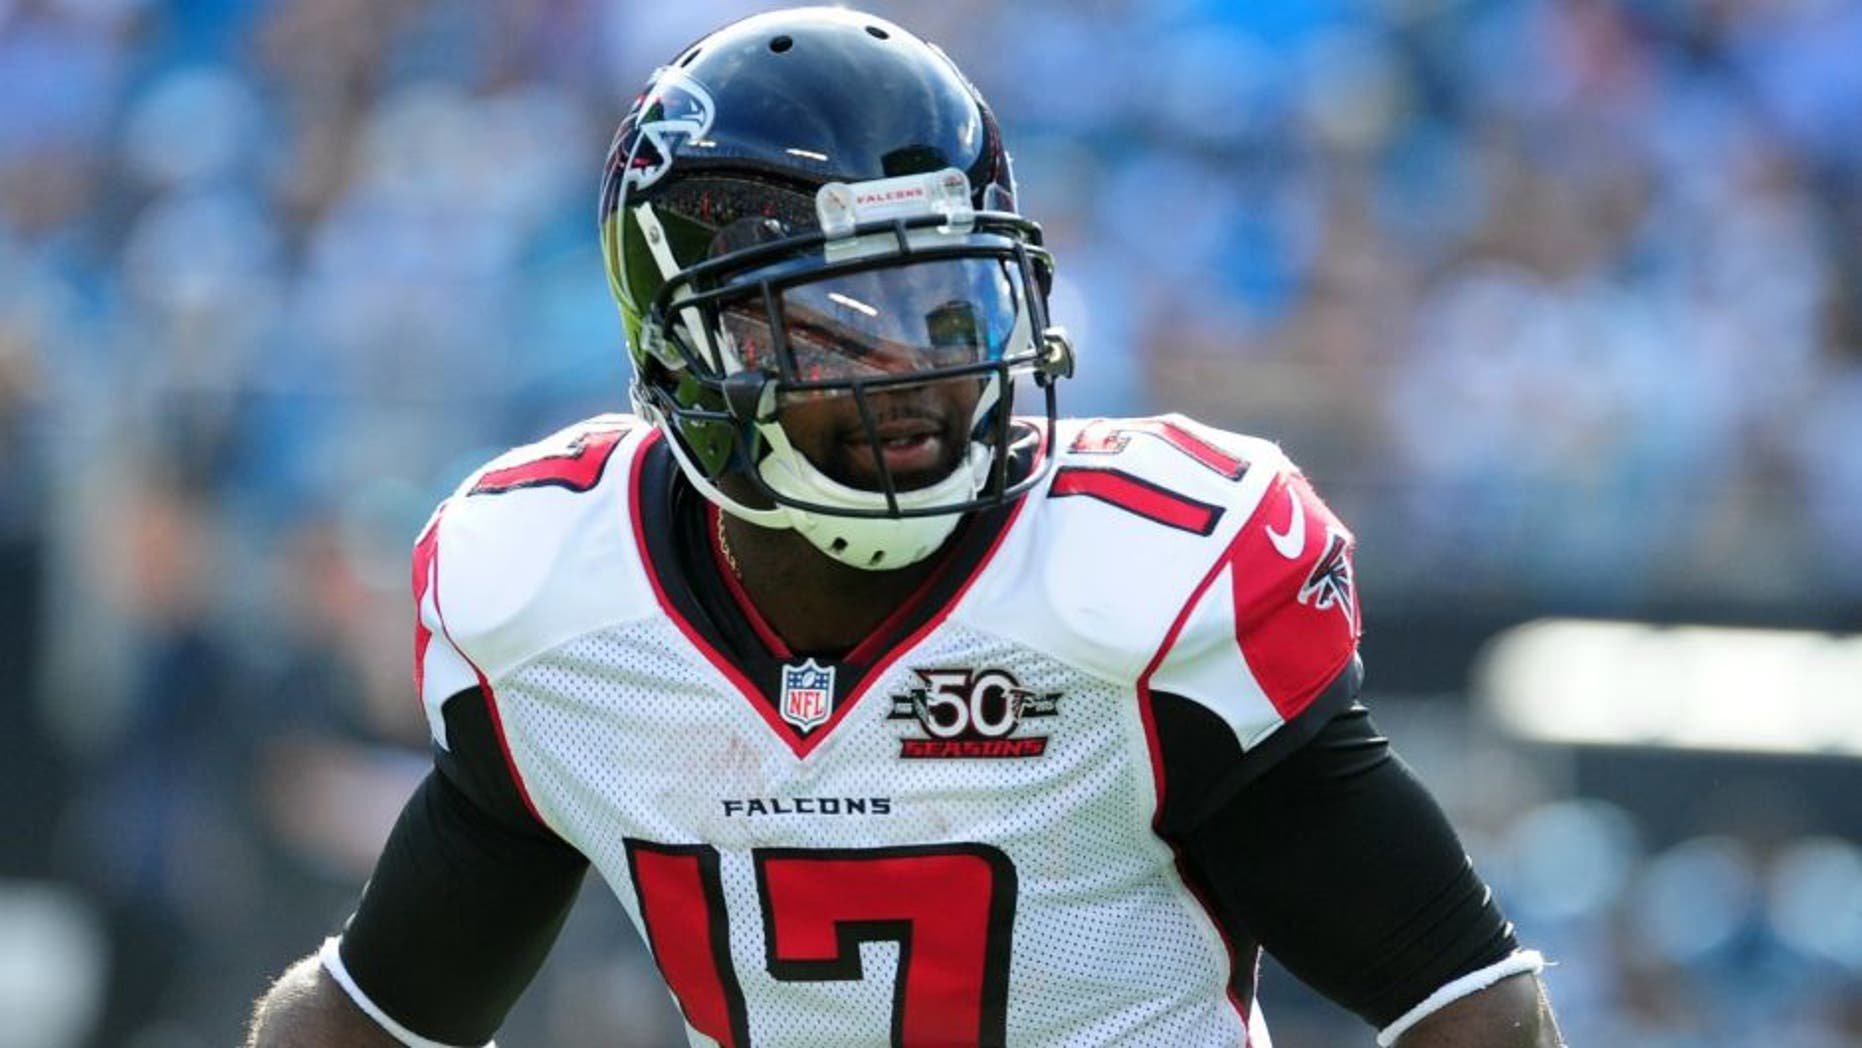 CHARLOTTE, NC - DECEMBER 13: Devin Hester #17 of the Atlanta Falcons looks to return a punt against the Carolina Panthers at Bank Of America Stadium on December 13, 2015 in Charlotte, North Carolina. (Photo by Scott Cunningham/Getty Images) *** Local Caption *** Devin Hester